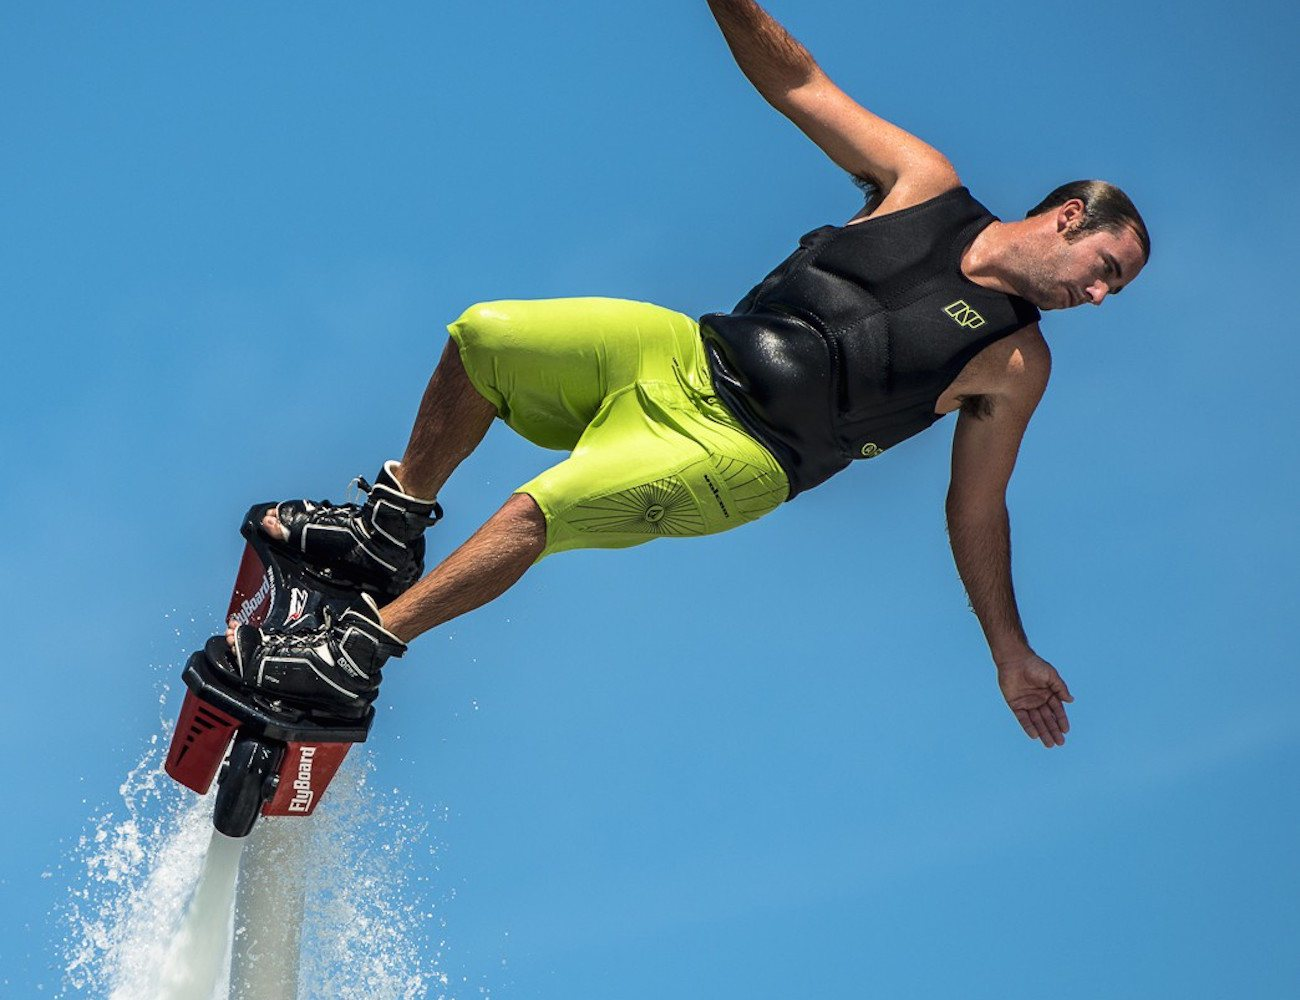 flyboard-v3-complete-kit-by-zapata-01